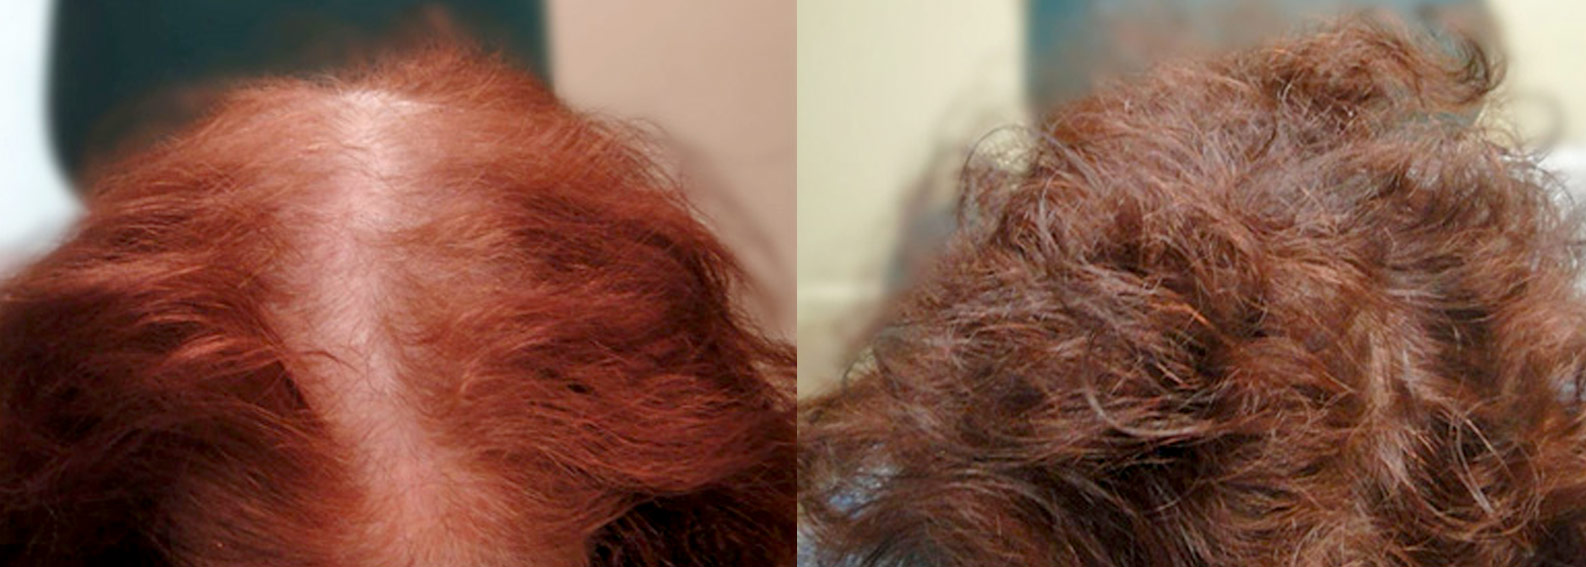 FUE Before & After Photo with amazing results.